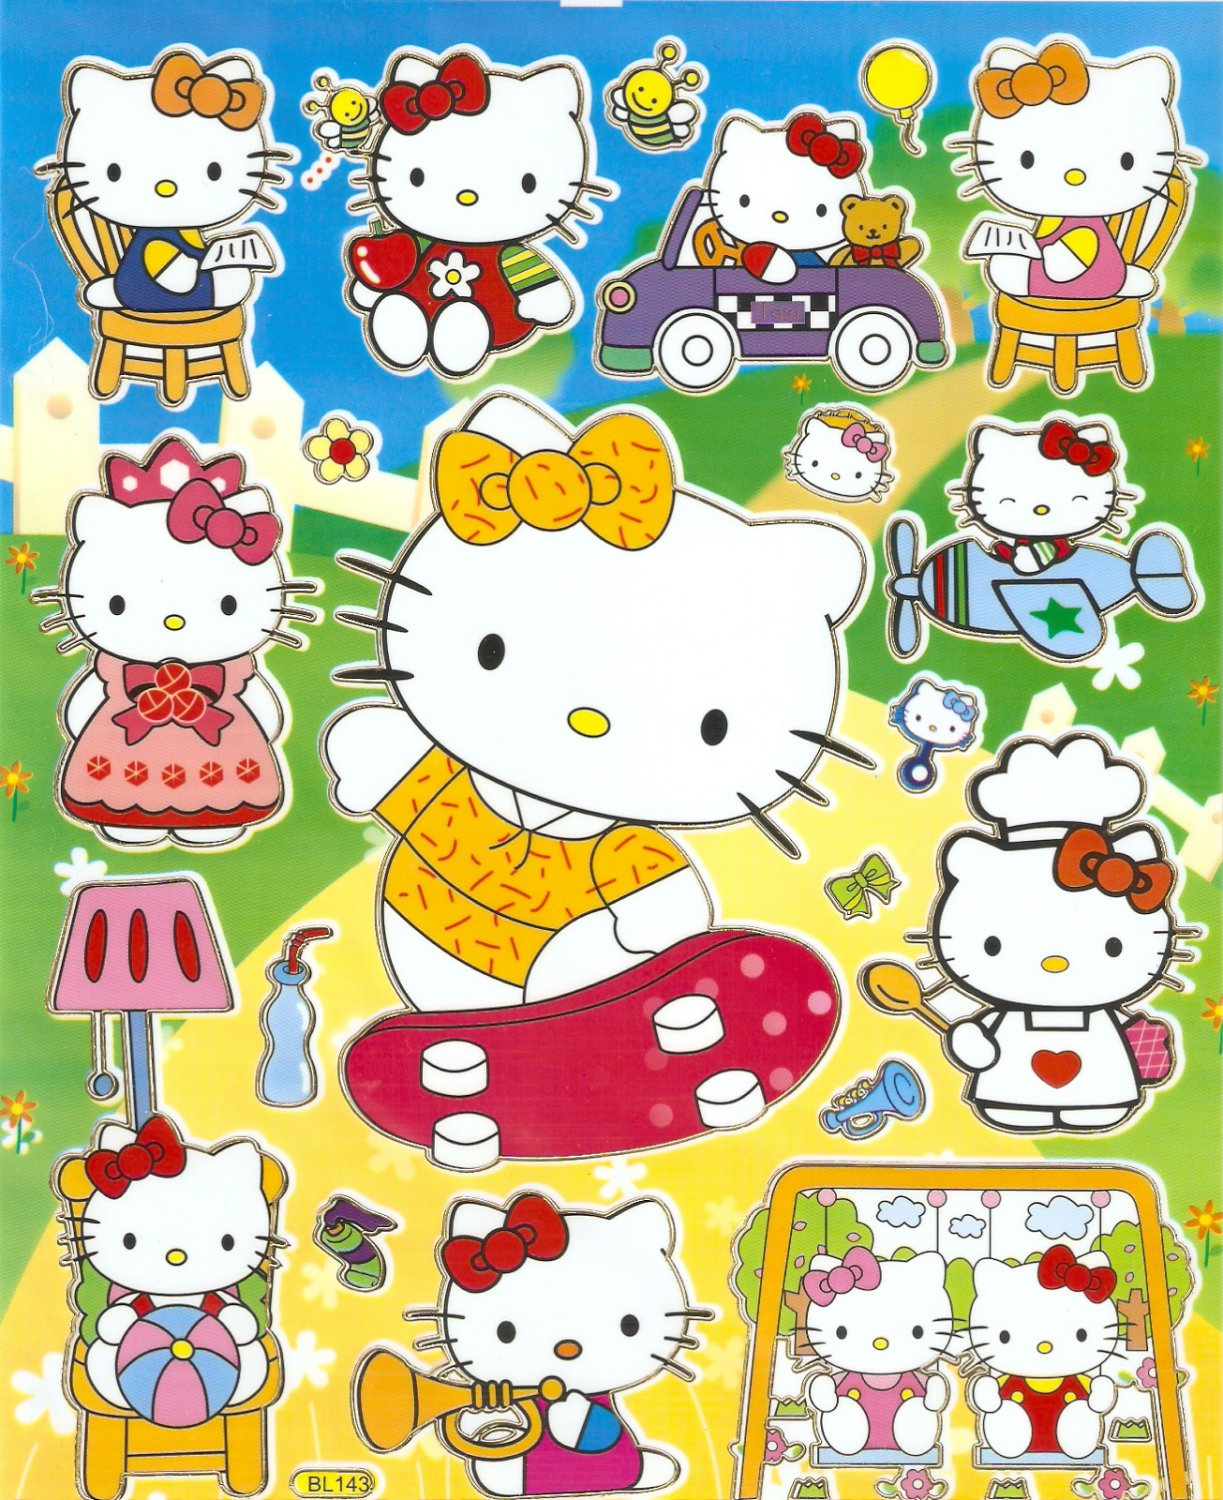 10 Big sheets Hello Kitty Sticker Buy 2 lots Bonus 1  #HK BL143